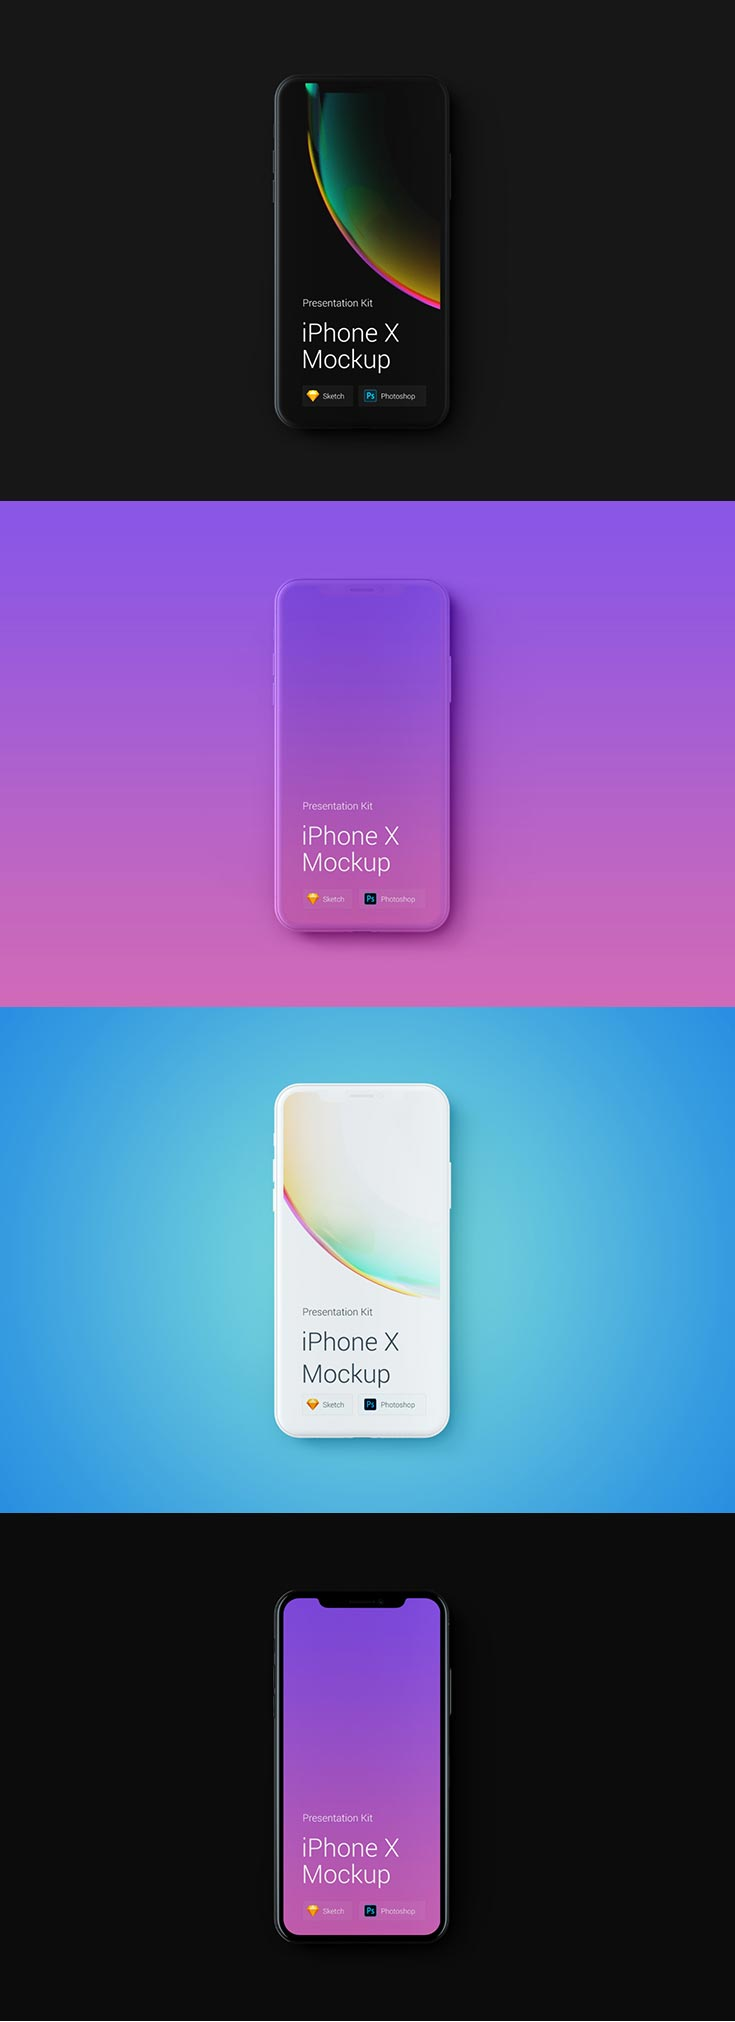 Free iPhone X Mockup PSD for showcasing your apps and UI design in a stunning new look. This new iphone X from Apple features an edge-to-edge screen.